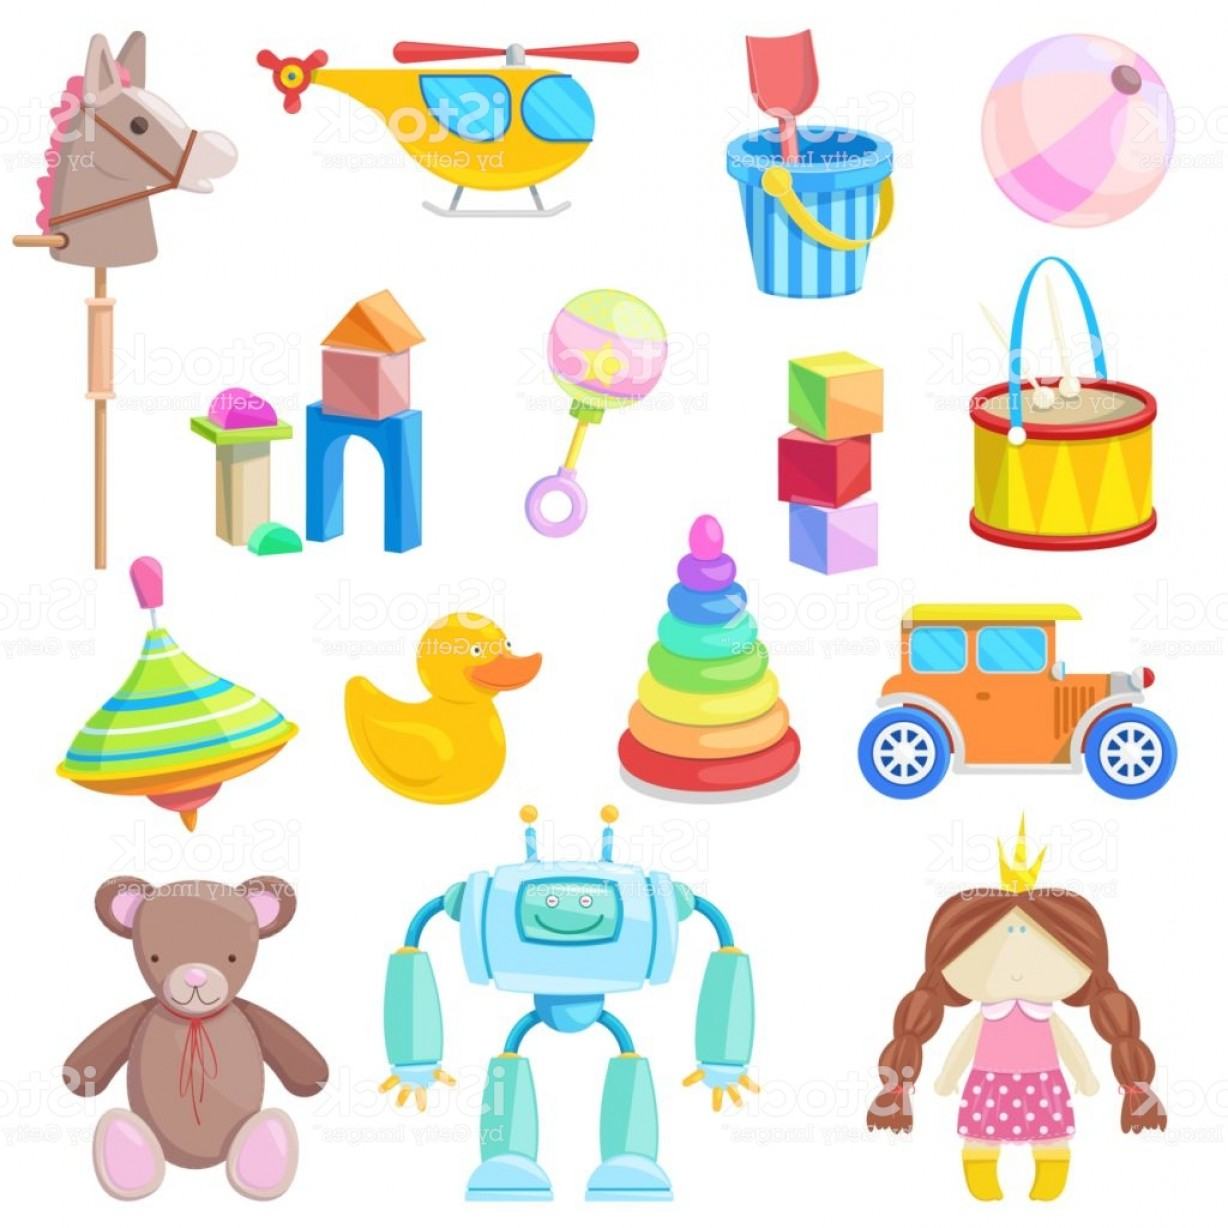 Baby Toy Vector: Kids Toys Vector Icons Set Color Toy For Baby Boy And Girl Cartoon Illustration Gm